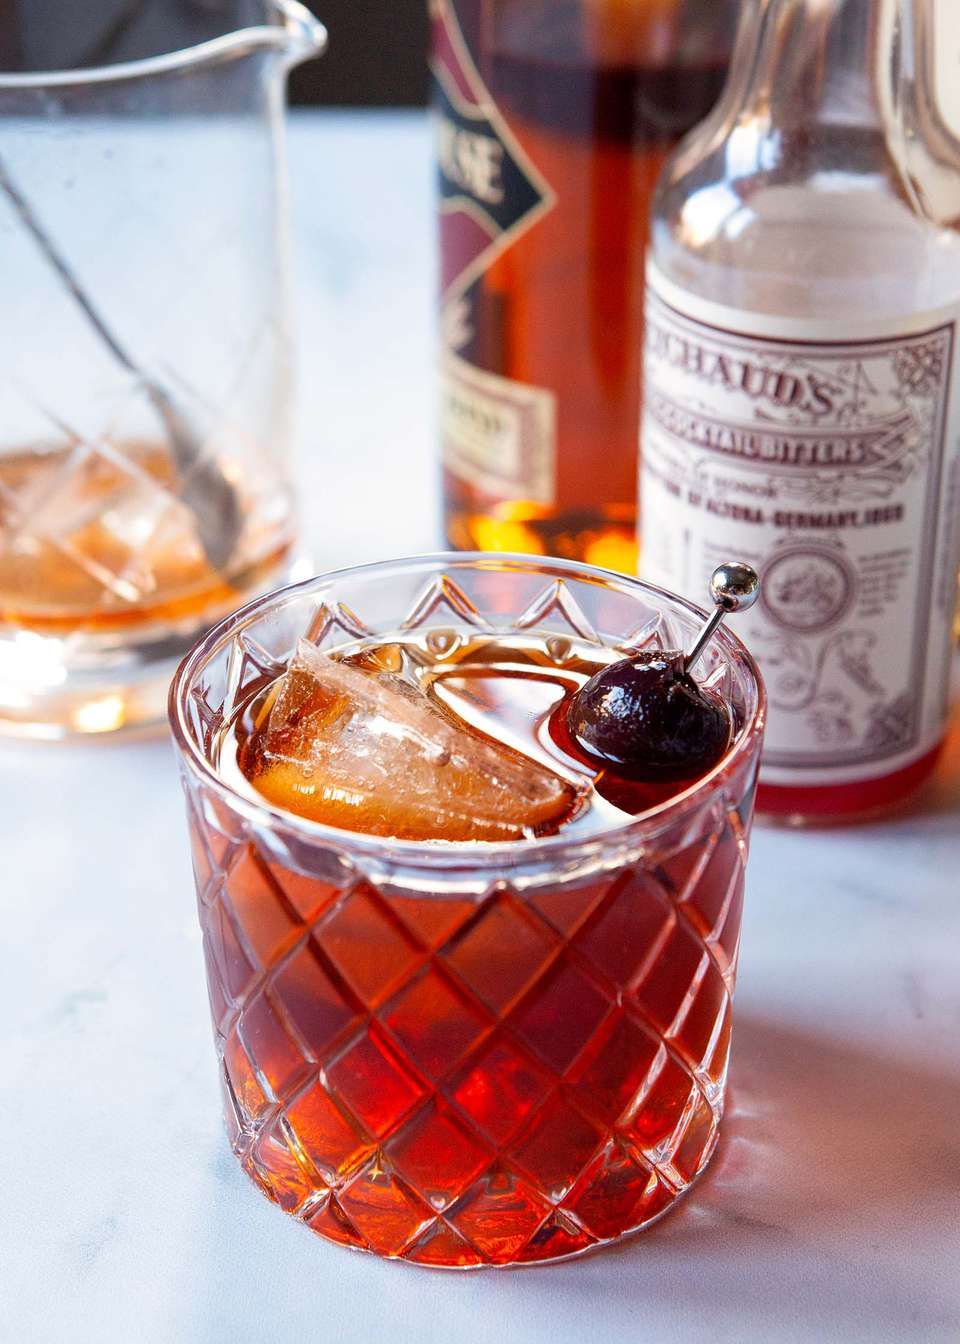 A Vieux carre is set in front of ingredients to make the cocktail.